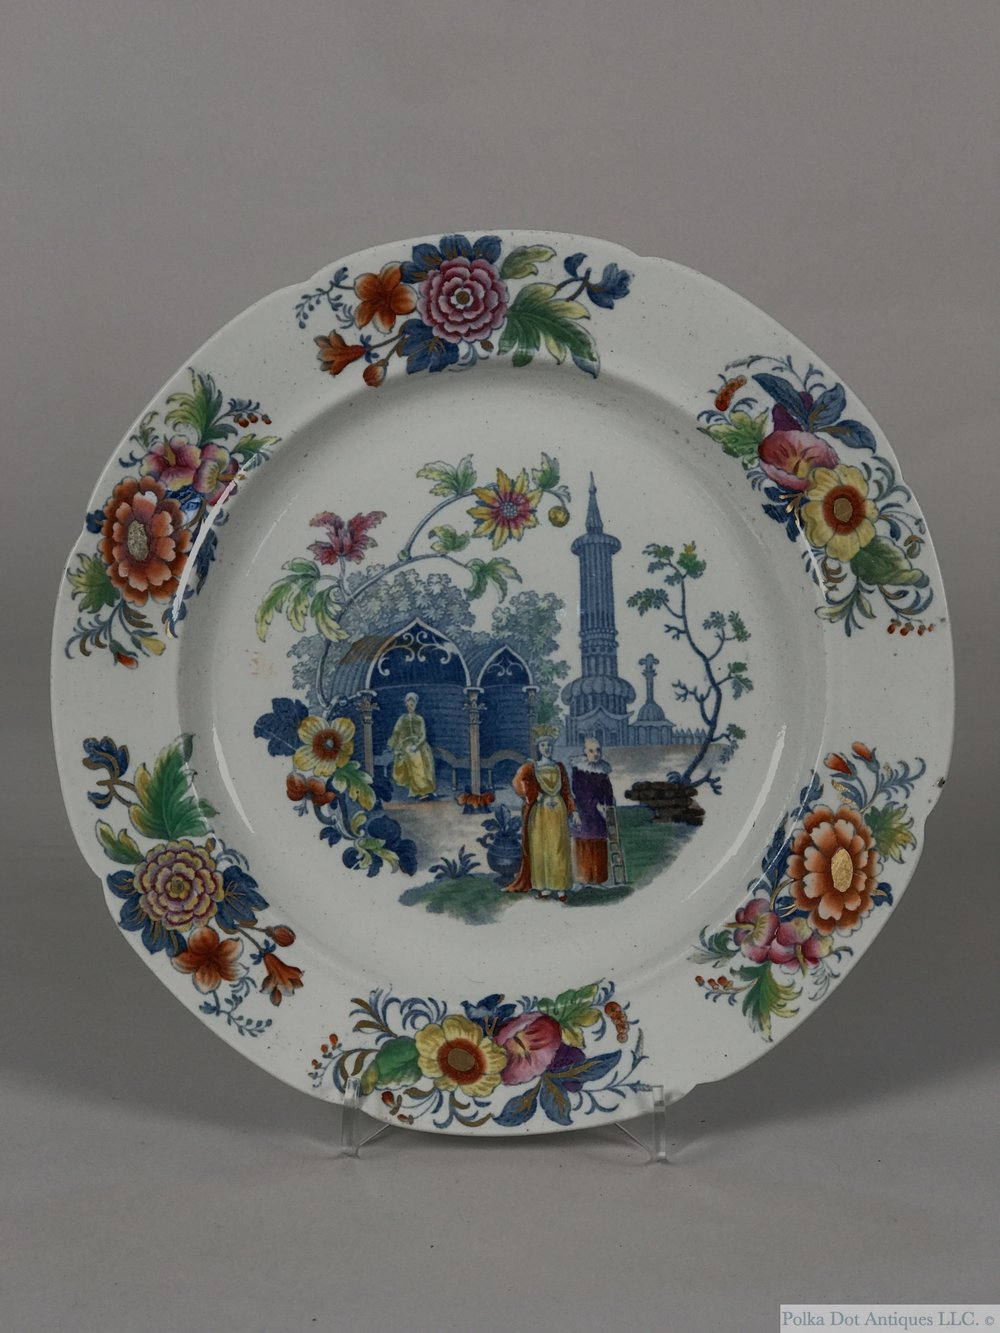 "English Ironstone Dinner Plate, c1840, printed and painted with a Gothic Chinoiserie scene, 9½"".   RPW0129 - $110"